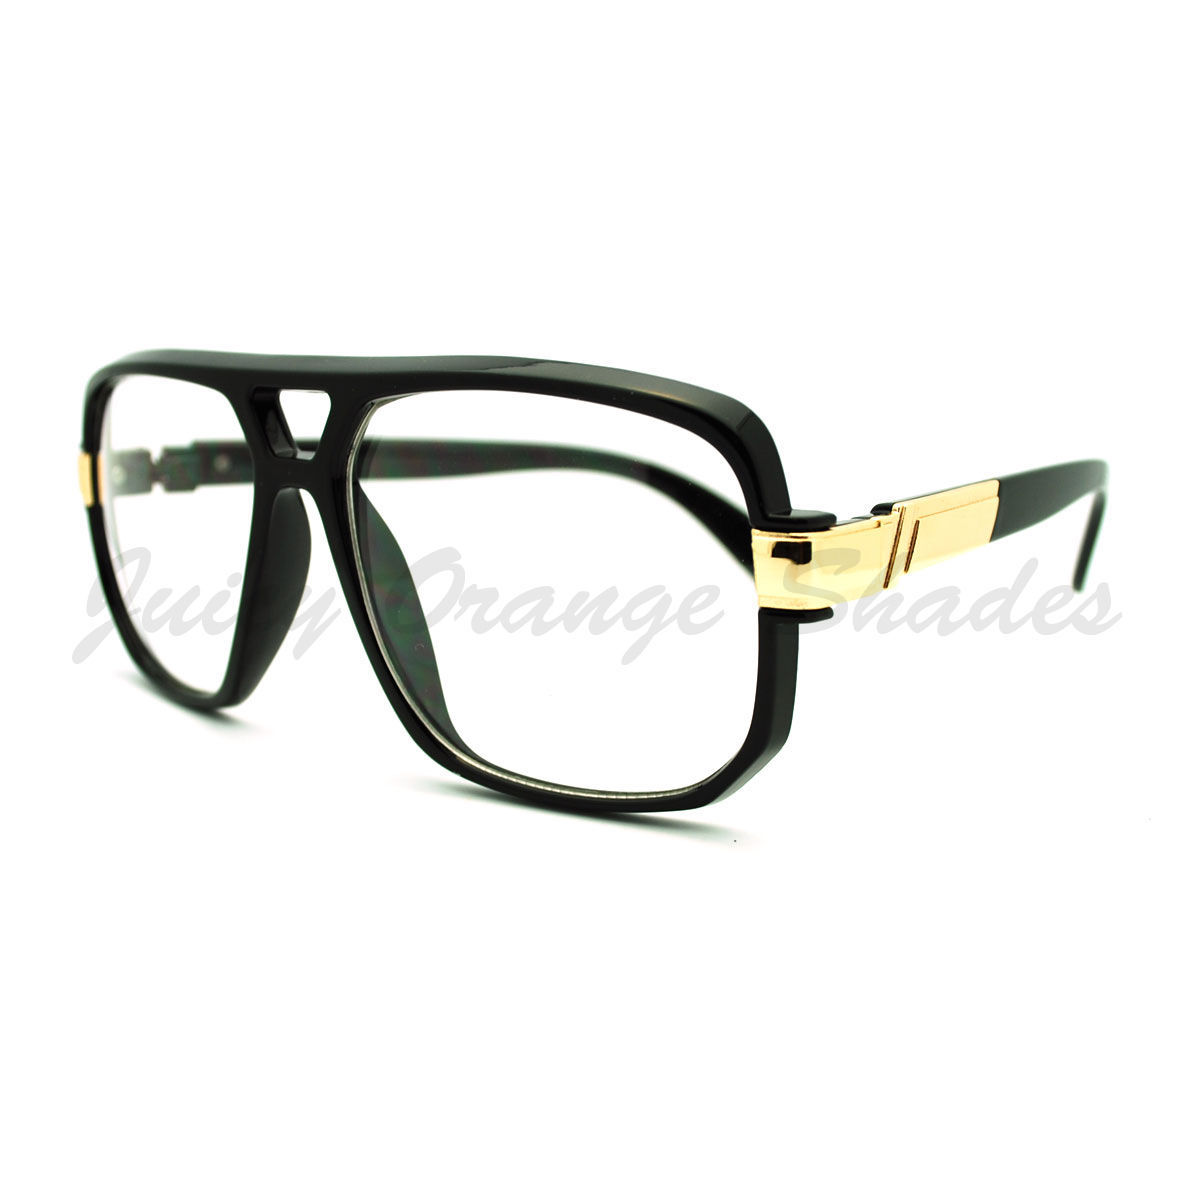 Oversized Clear Lens Glasses Flat Top Square Celebrity Eyeglasses